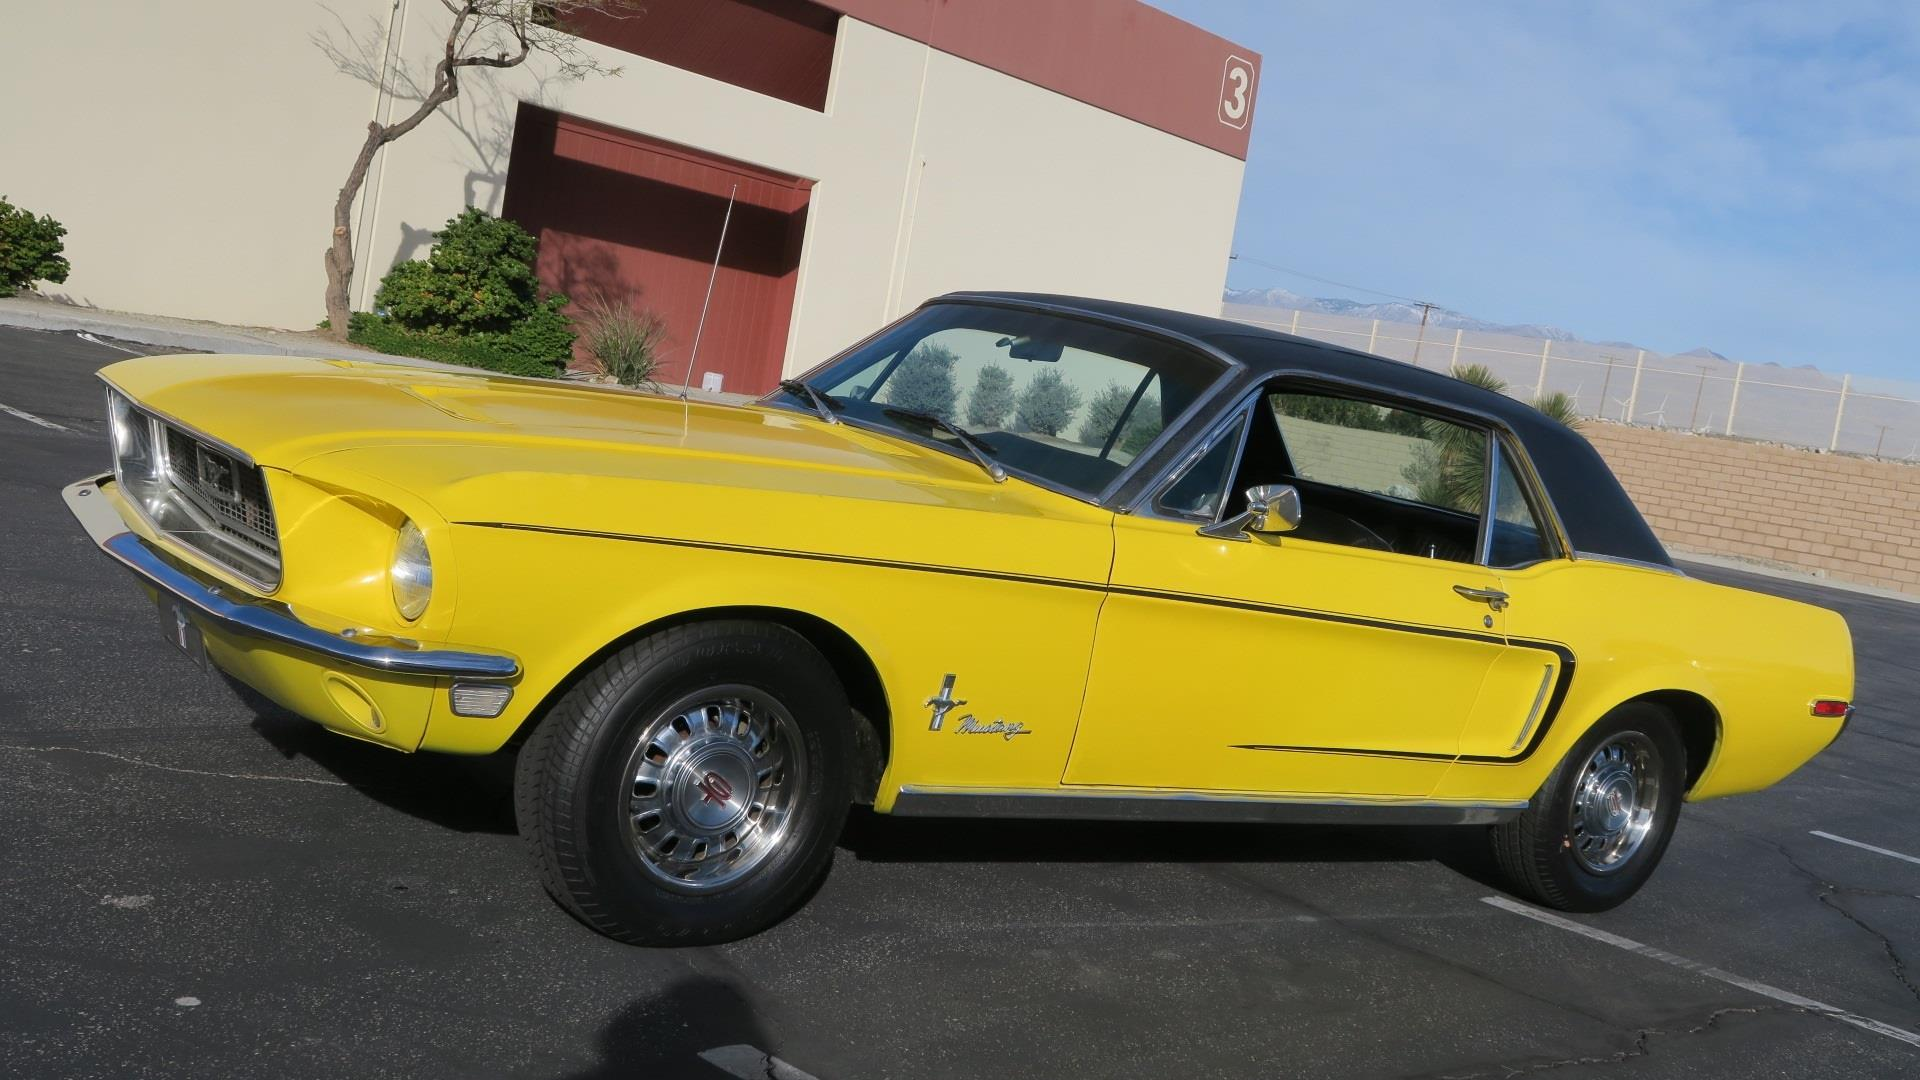 Details about 1968 ford mustang 289 c code california car p s disc clean